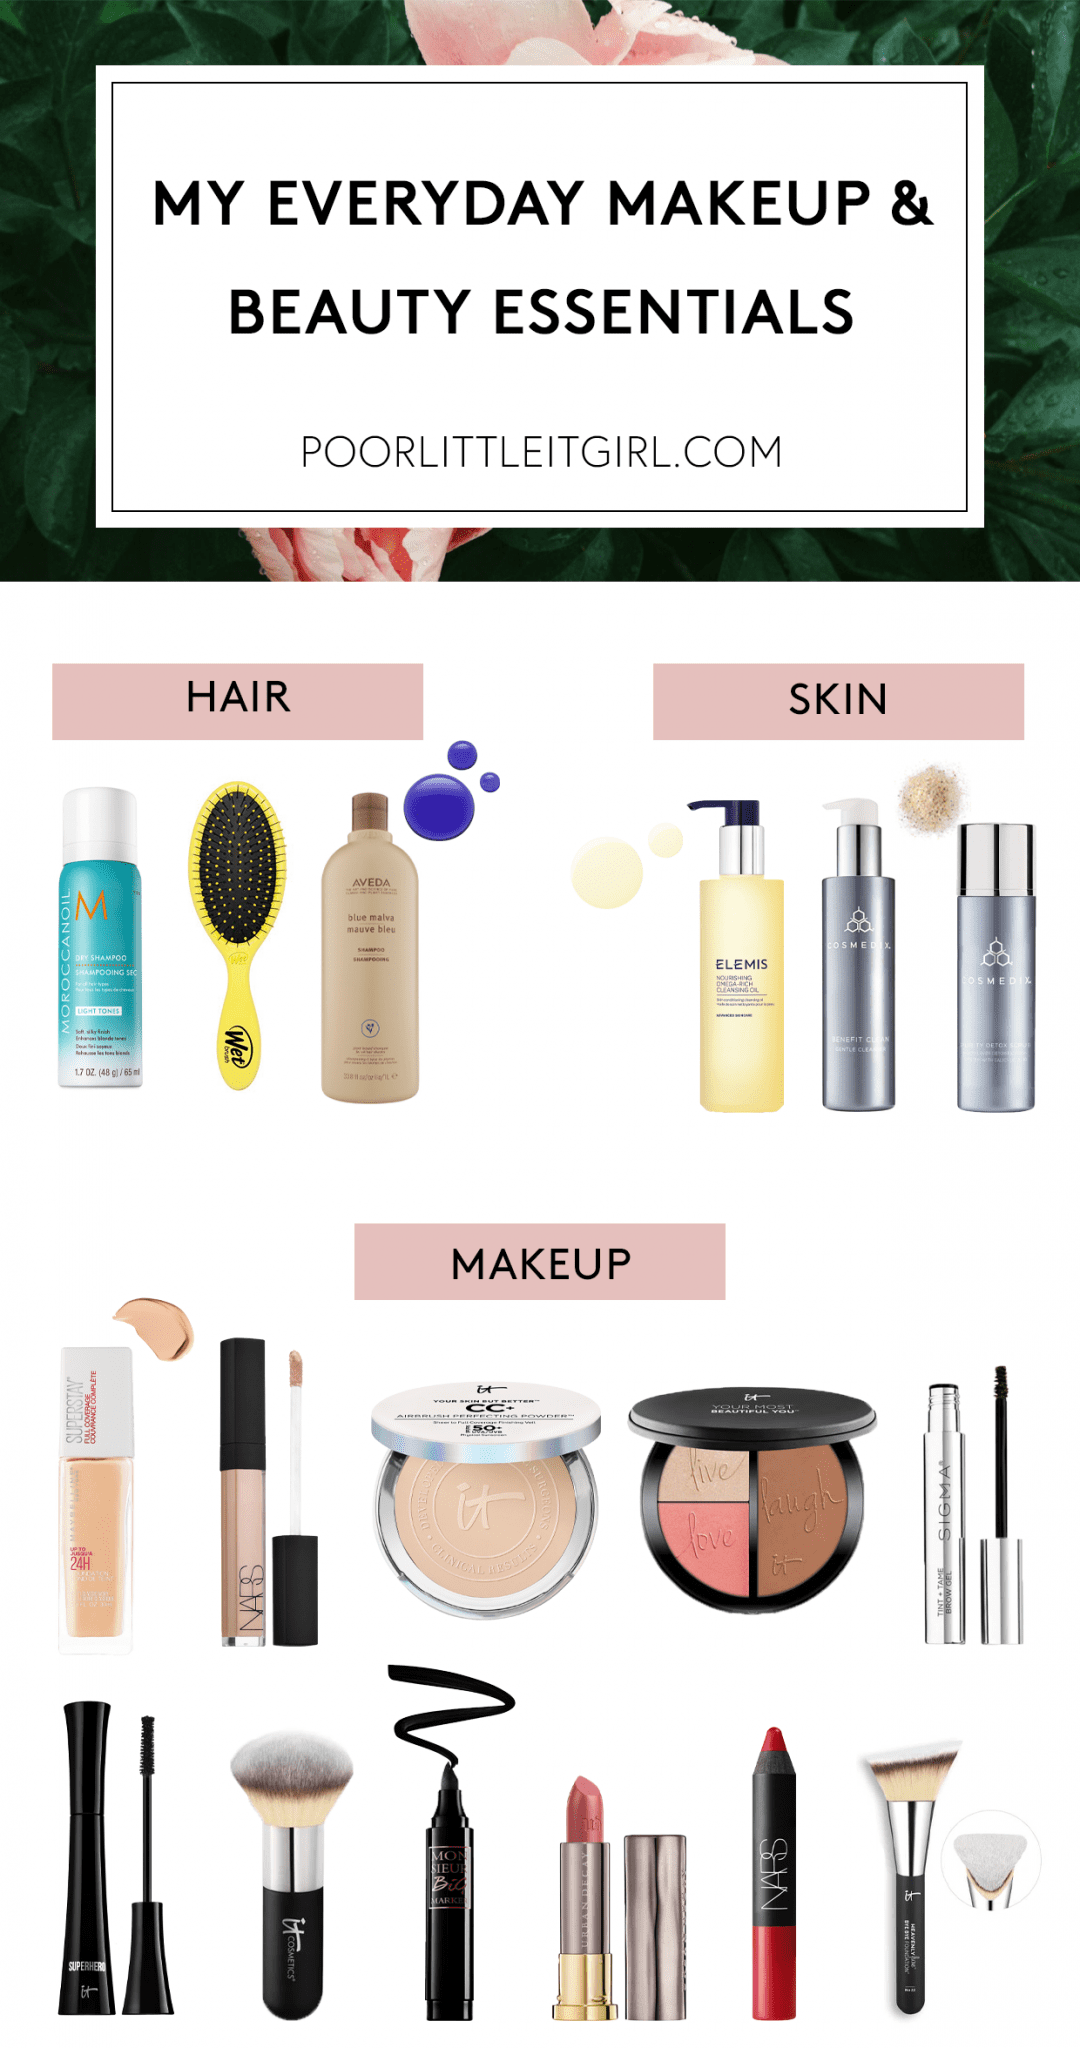 Youtube Everyday Makeup: My Everyday Makeup And Beauty Essentials